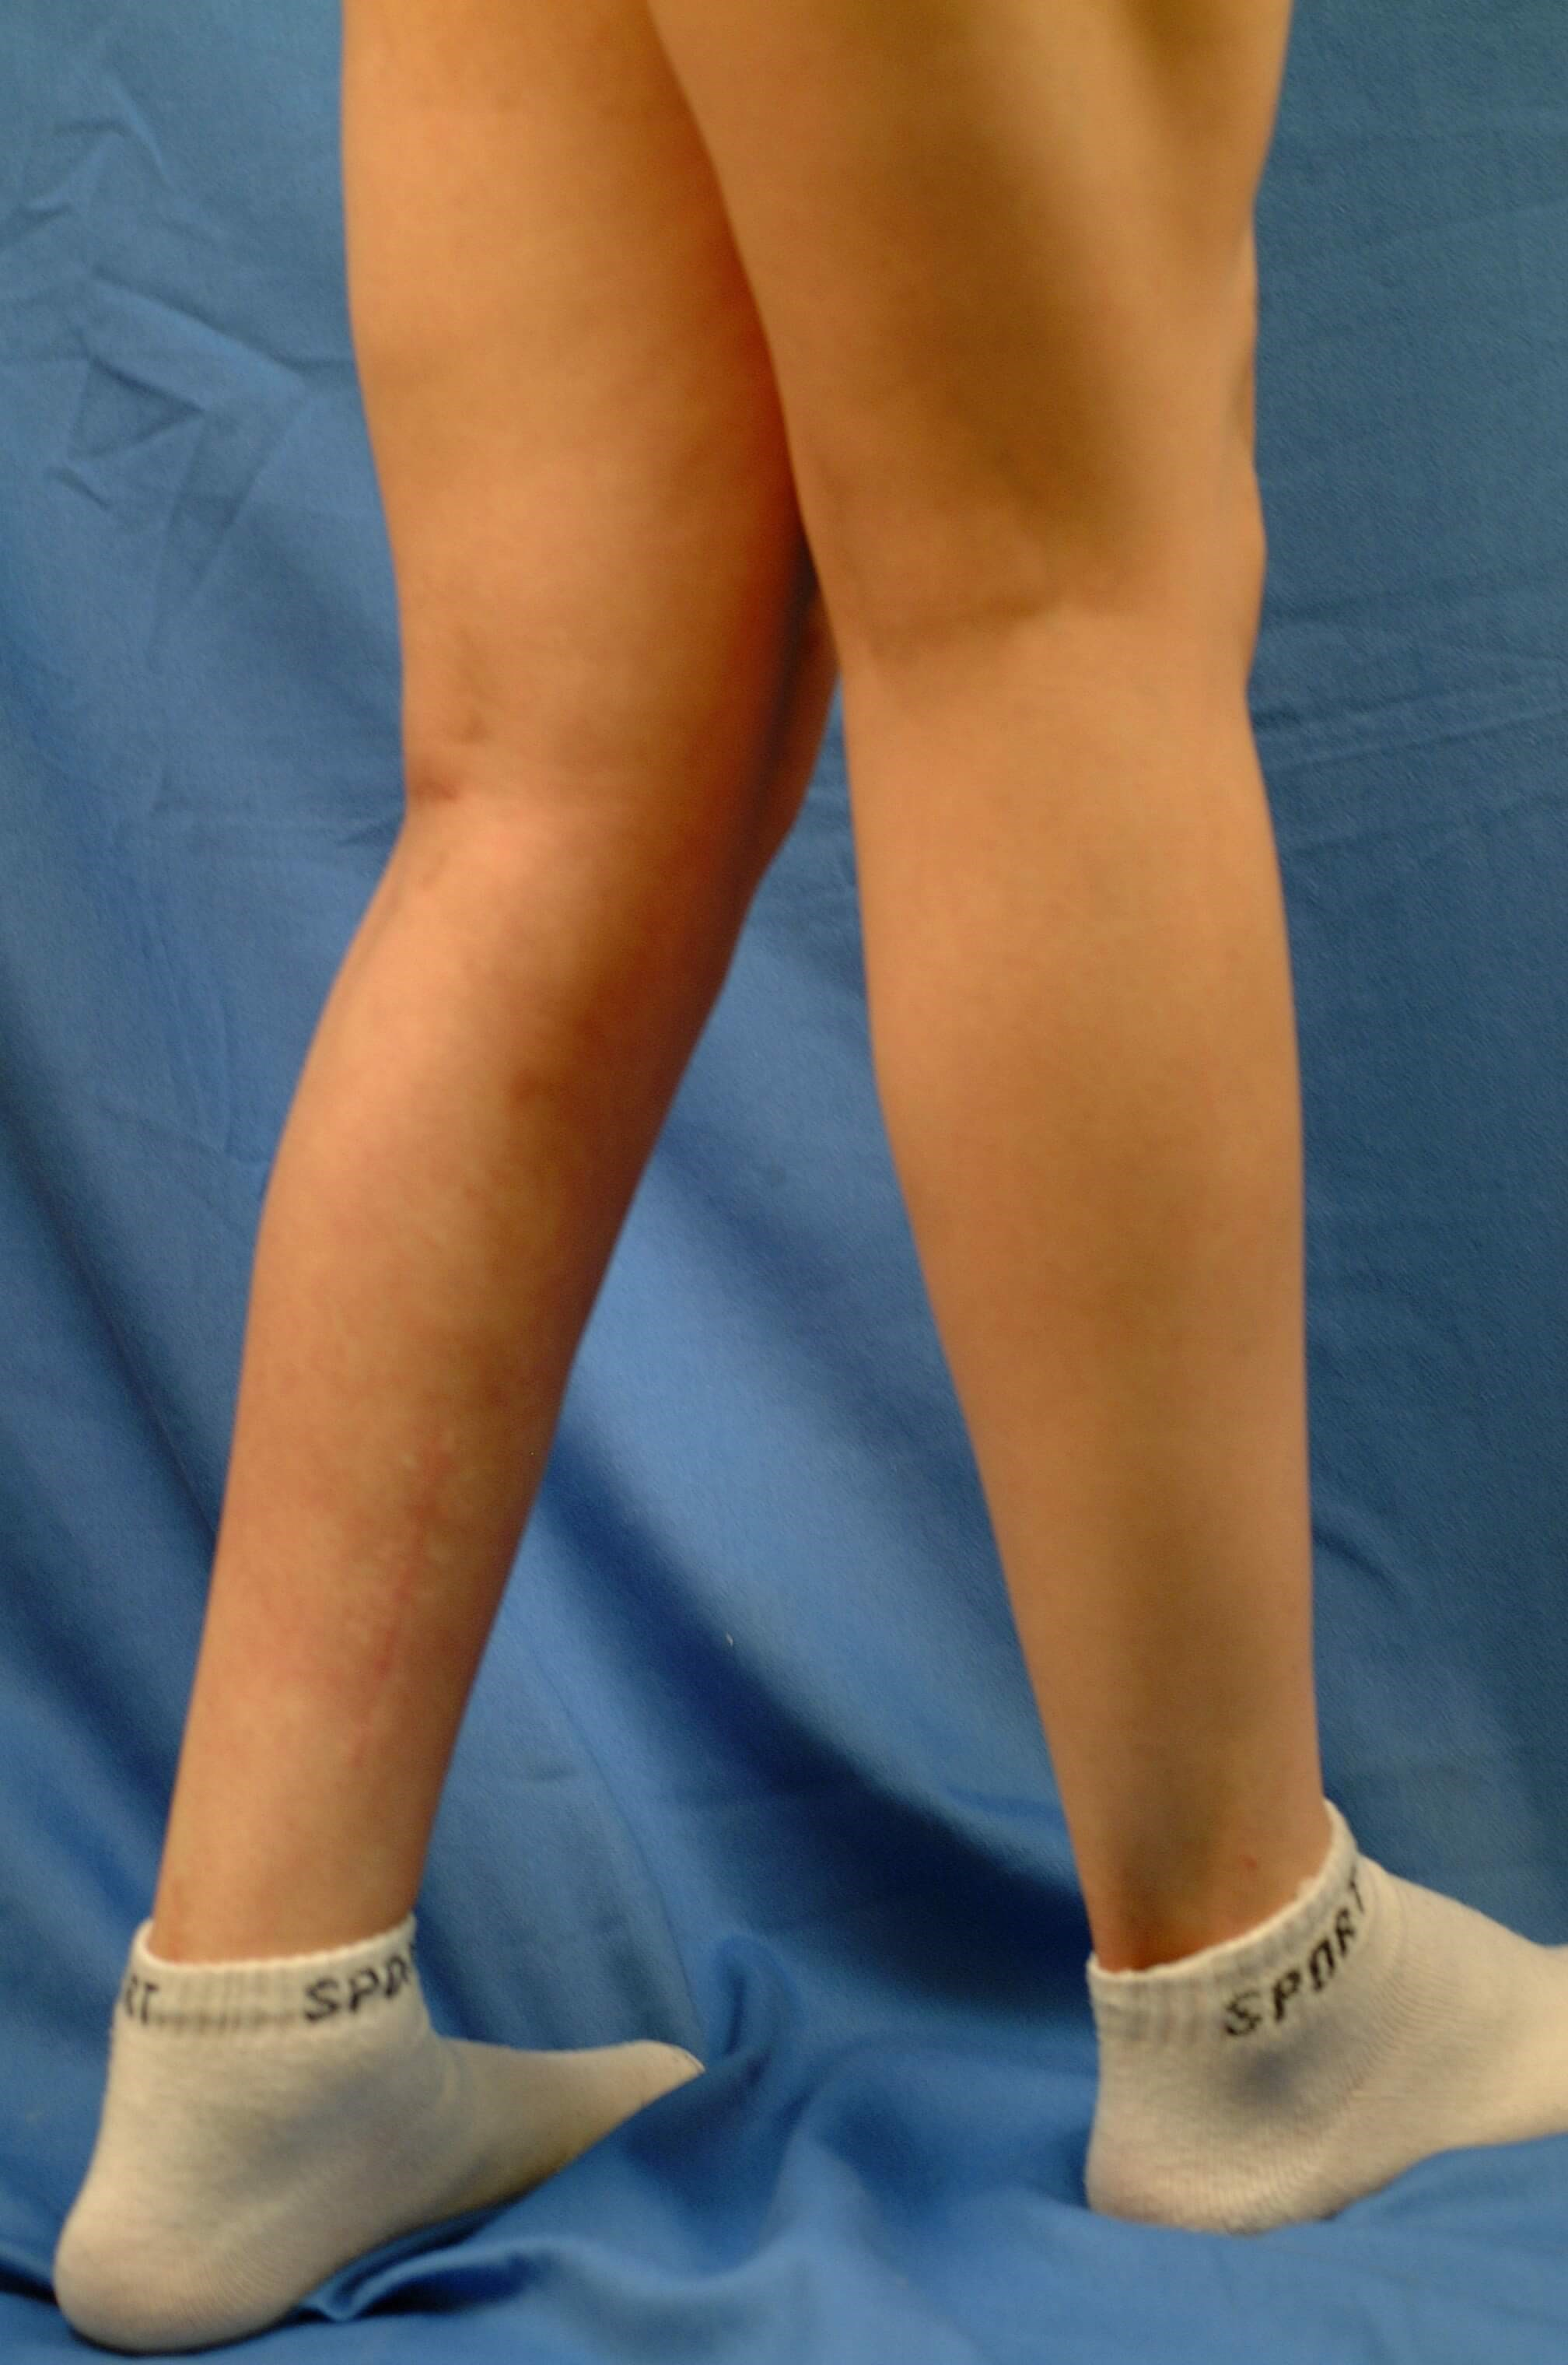 Newport Beach Calf Implants Oblique View After